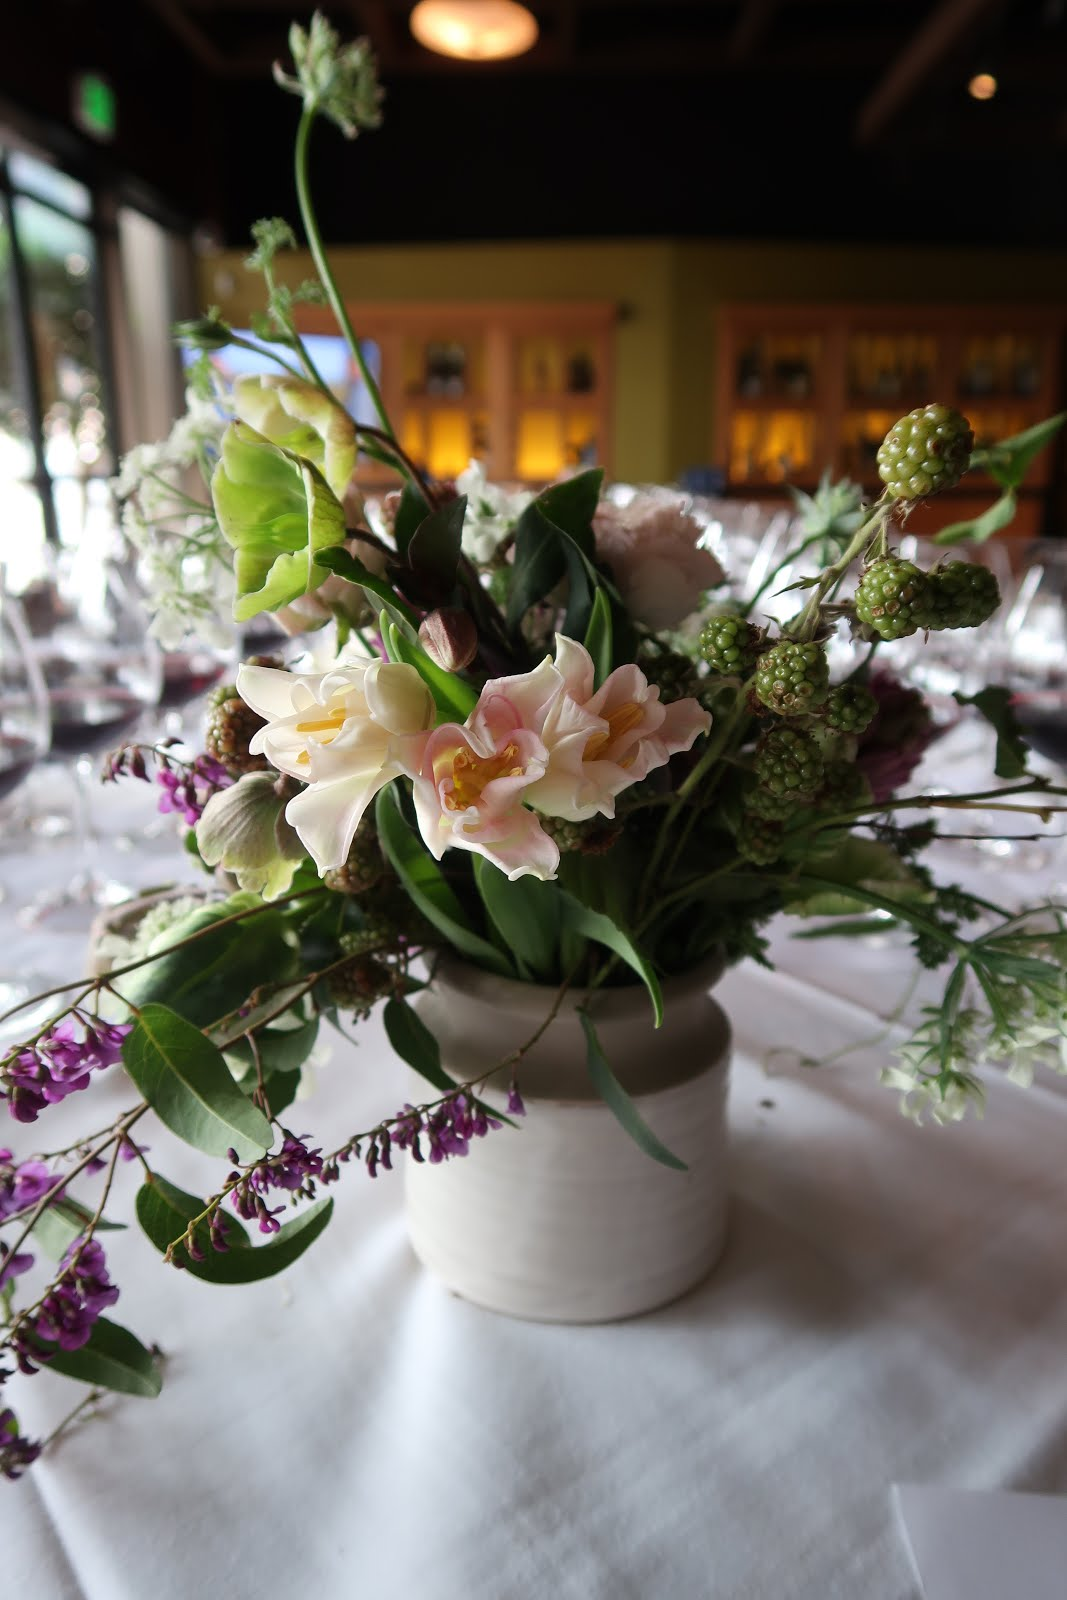 Beautiful flowers adorned the tables at the WALT Wine Root 101 experience at One Market Restaurant.